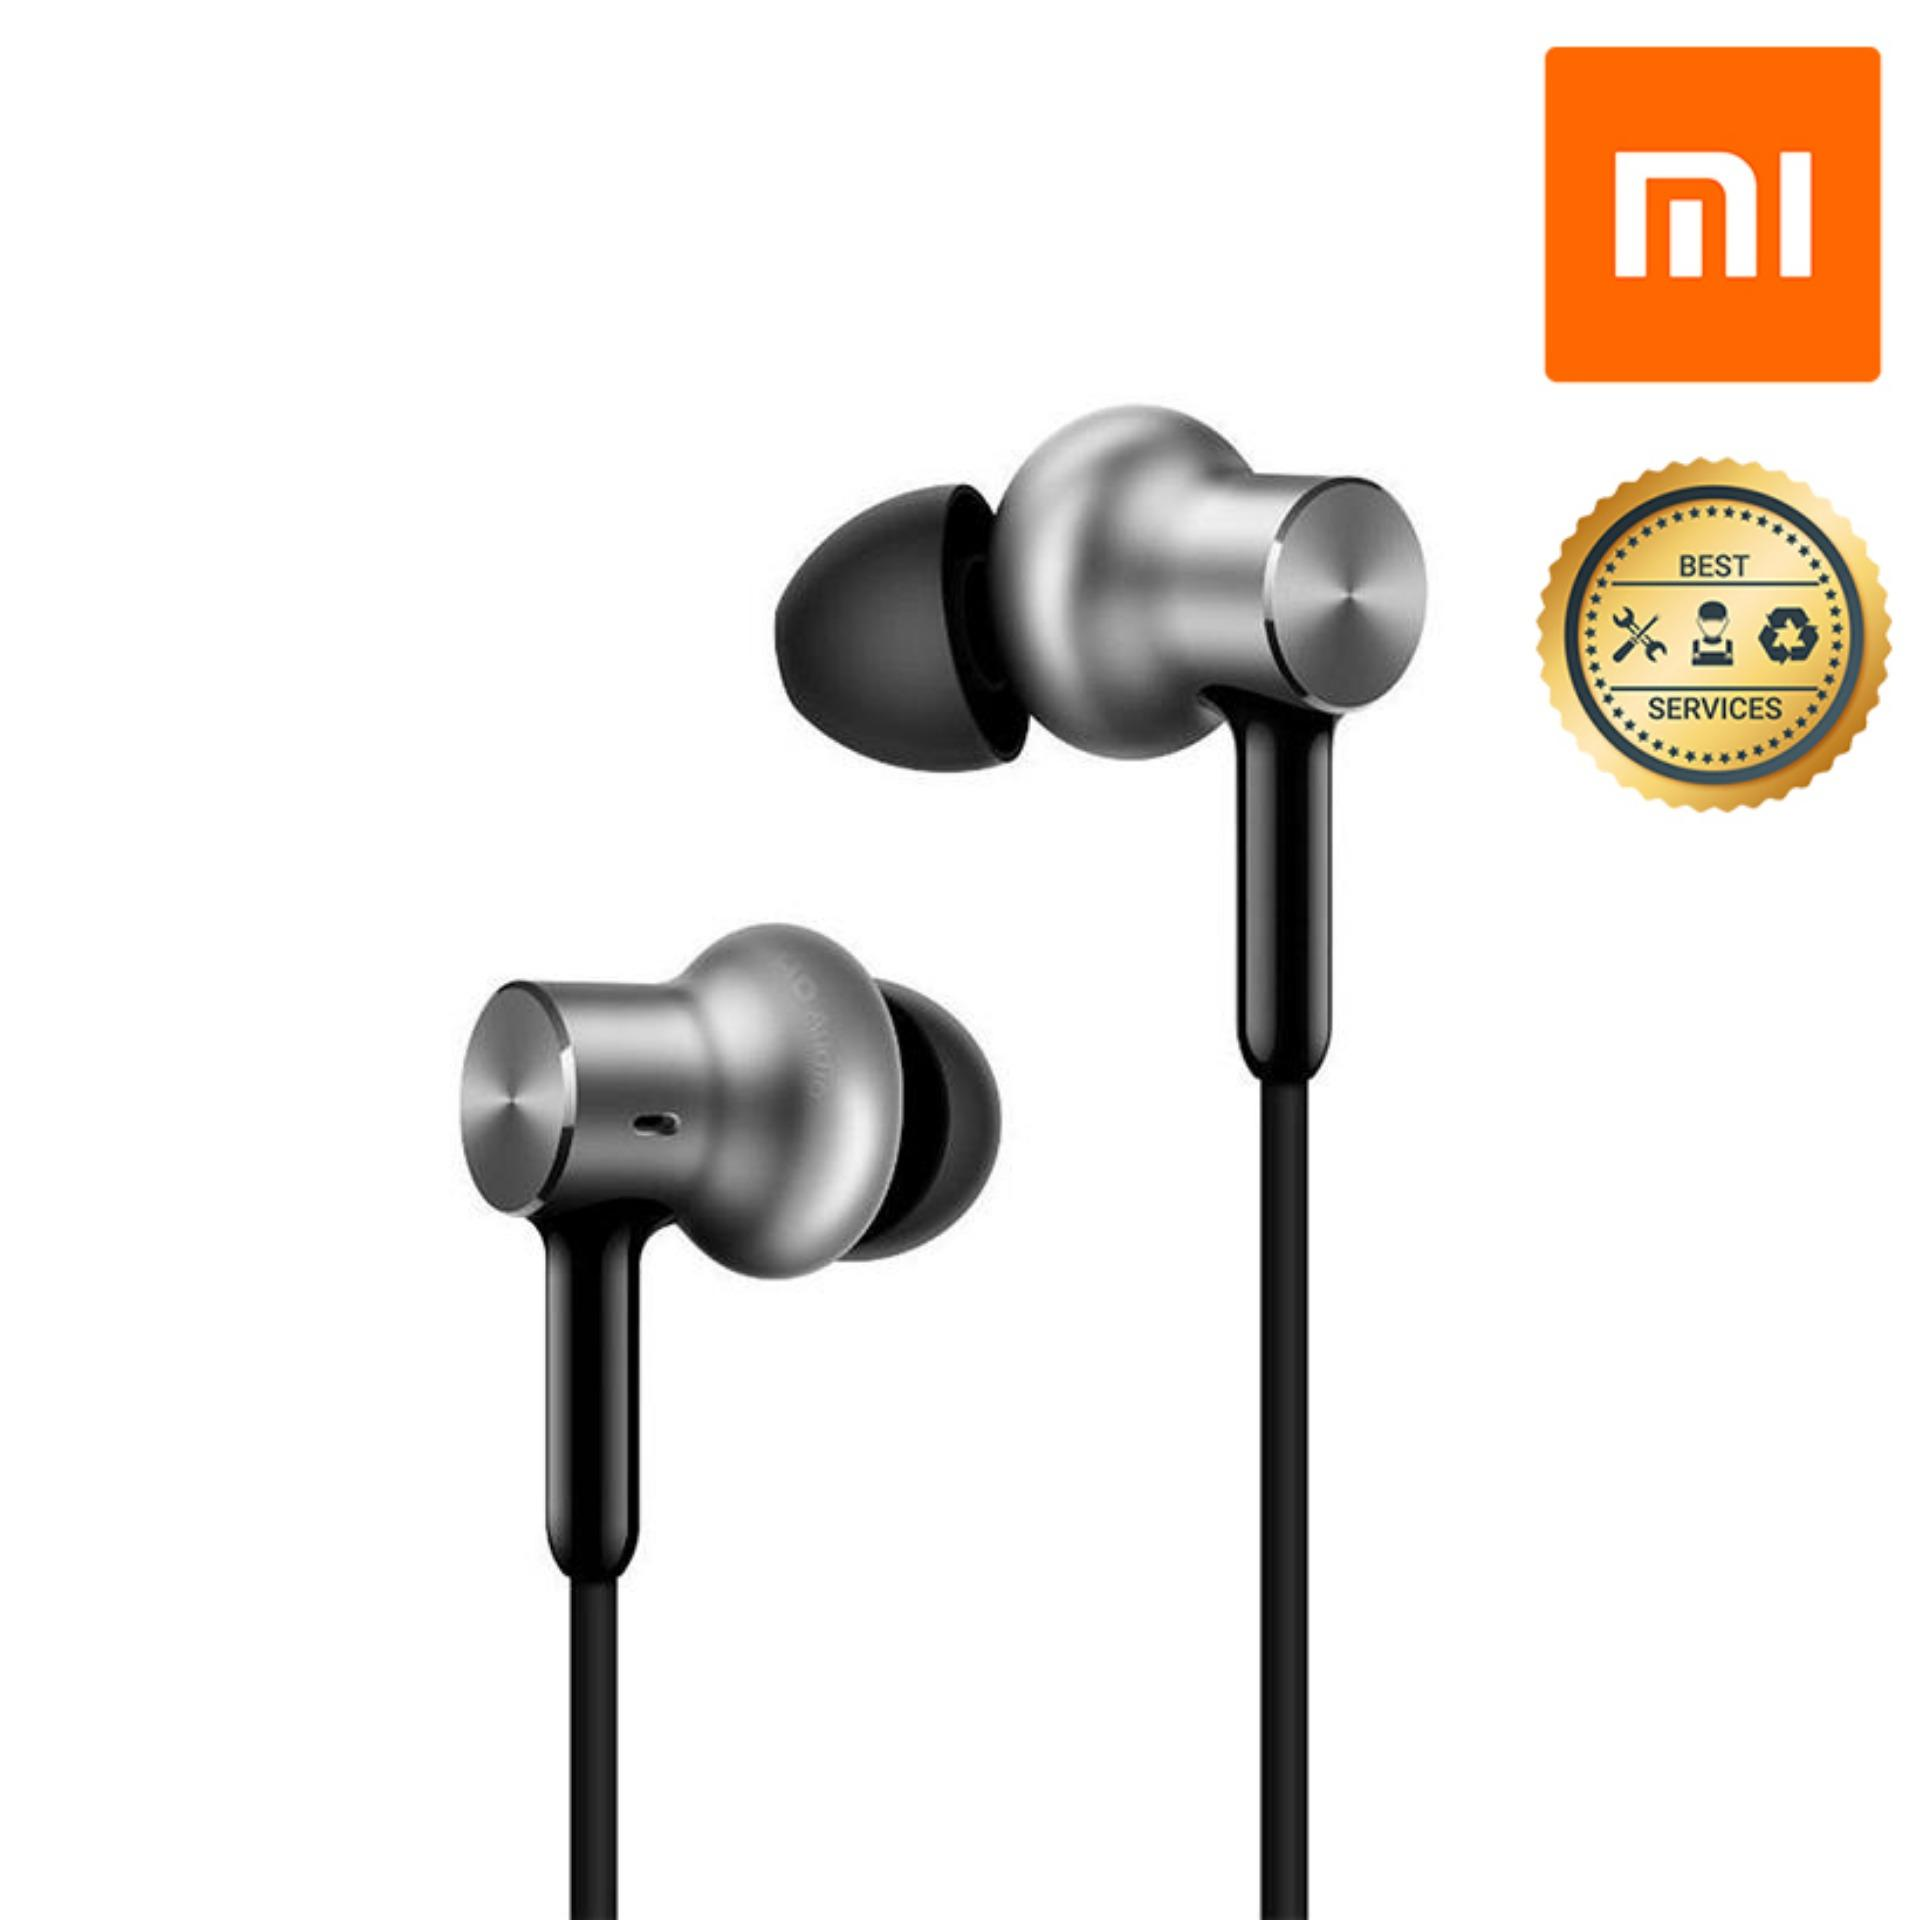 Tai nghe Xiaomi Mi In-Ear Headphones Pro HD (Bạc)